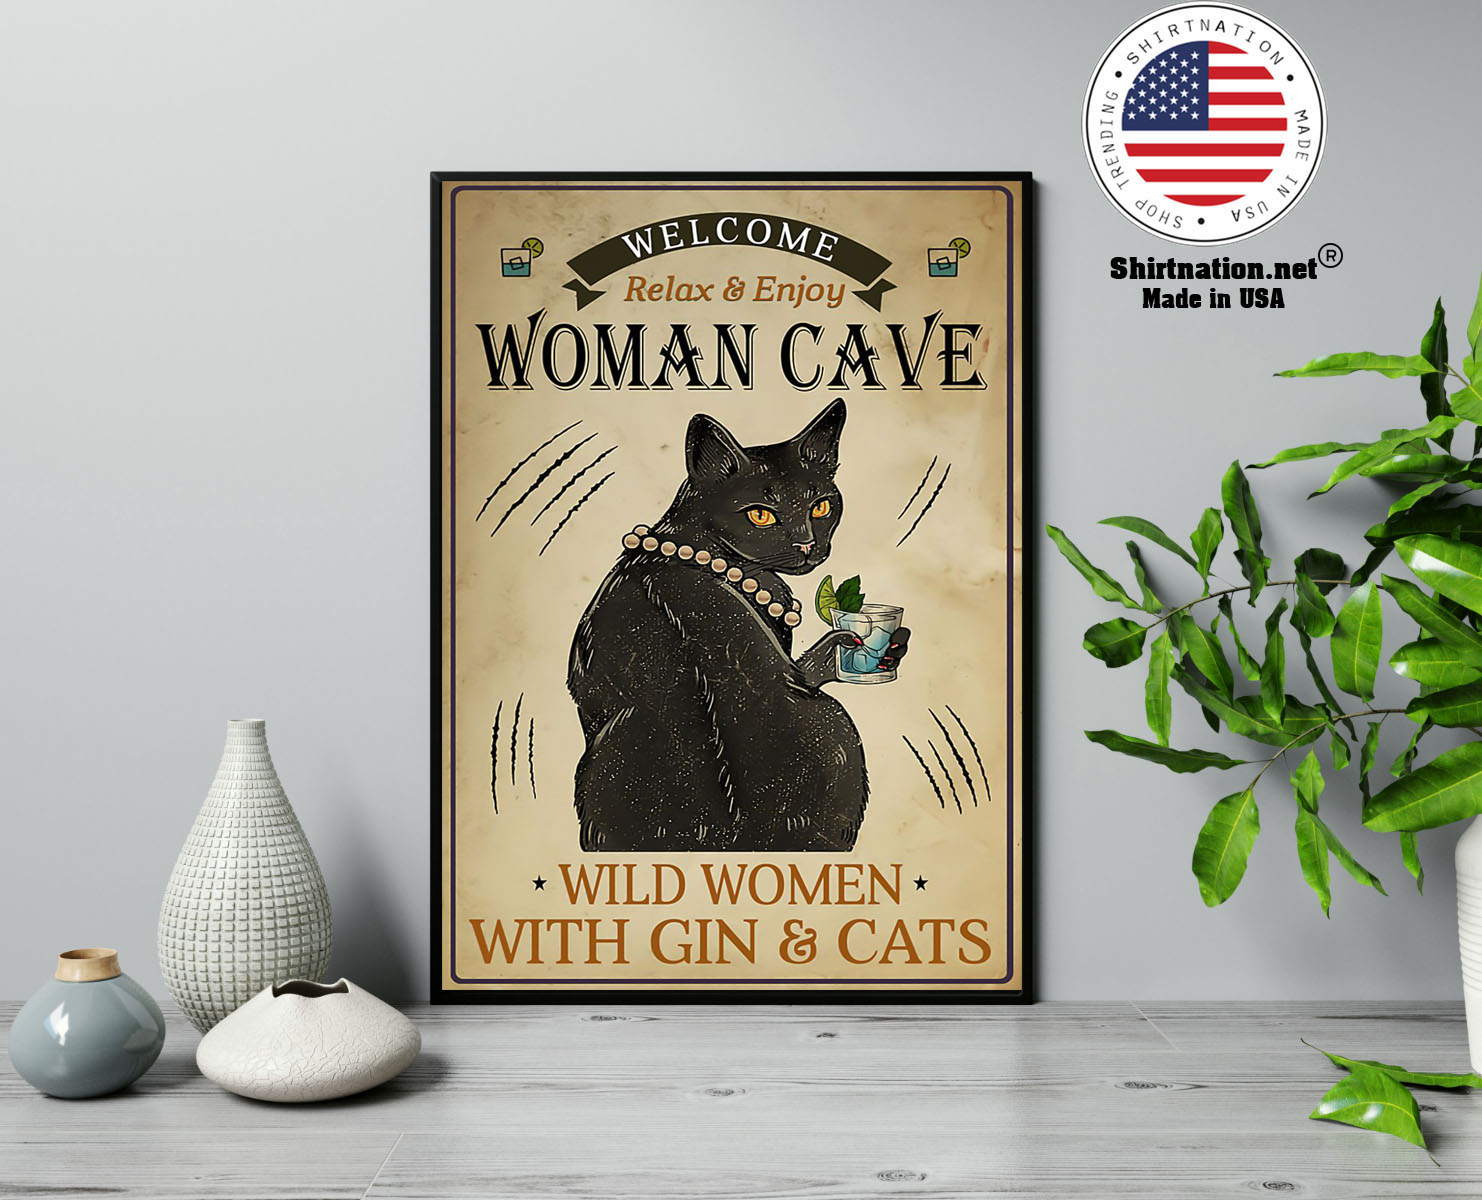 Welcome relax enjoy woman cave will women with gin and cats poster 13